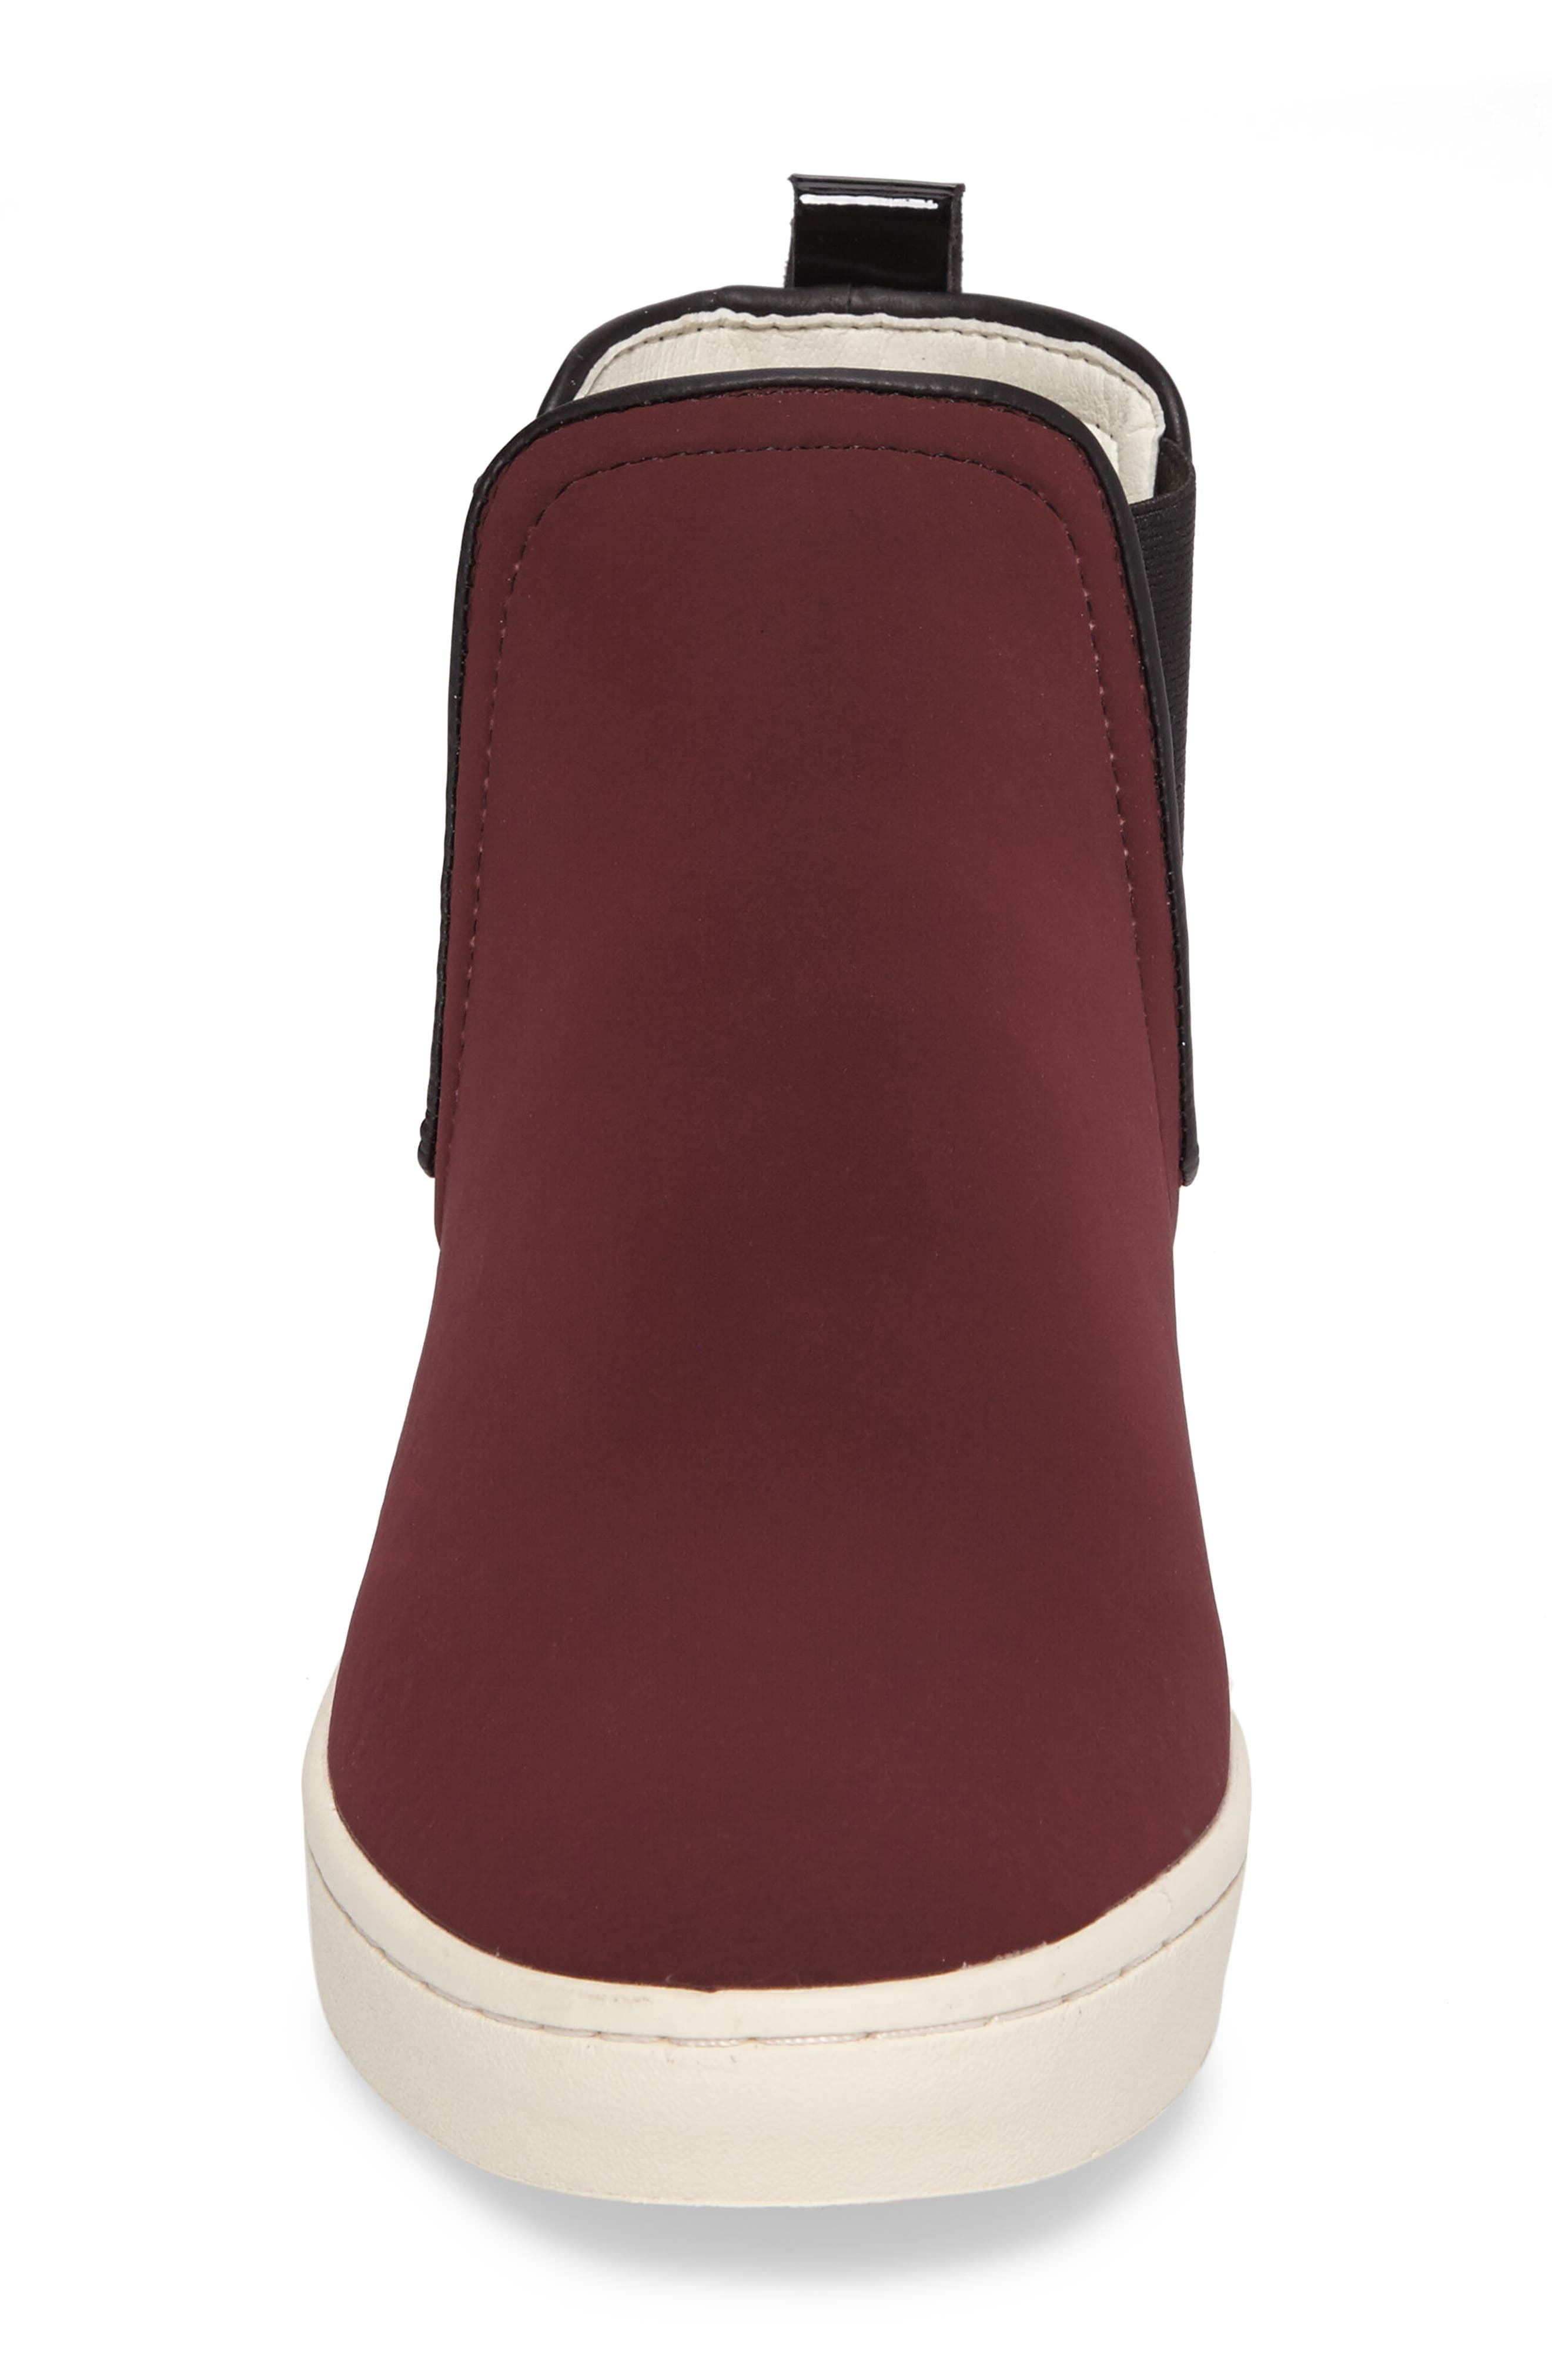 'Mabs' Slip-On Platform Sneaker,                             Alternate thumbnail 4, color,                             Bordeaux/ Black Leather